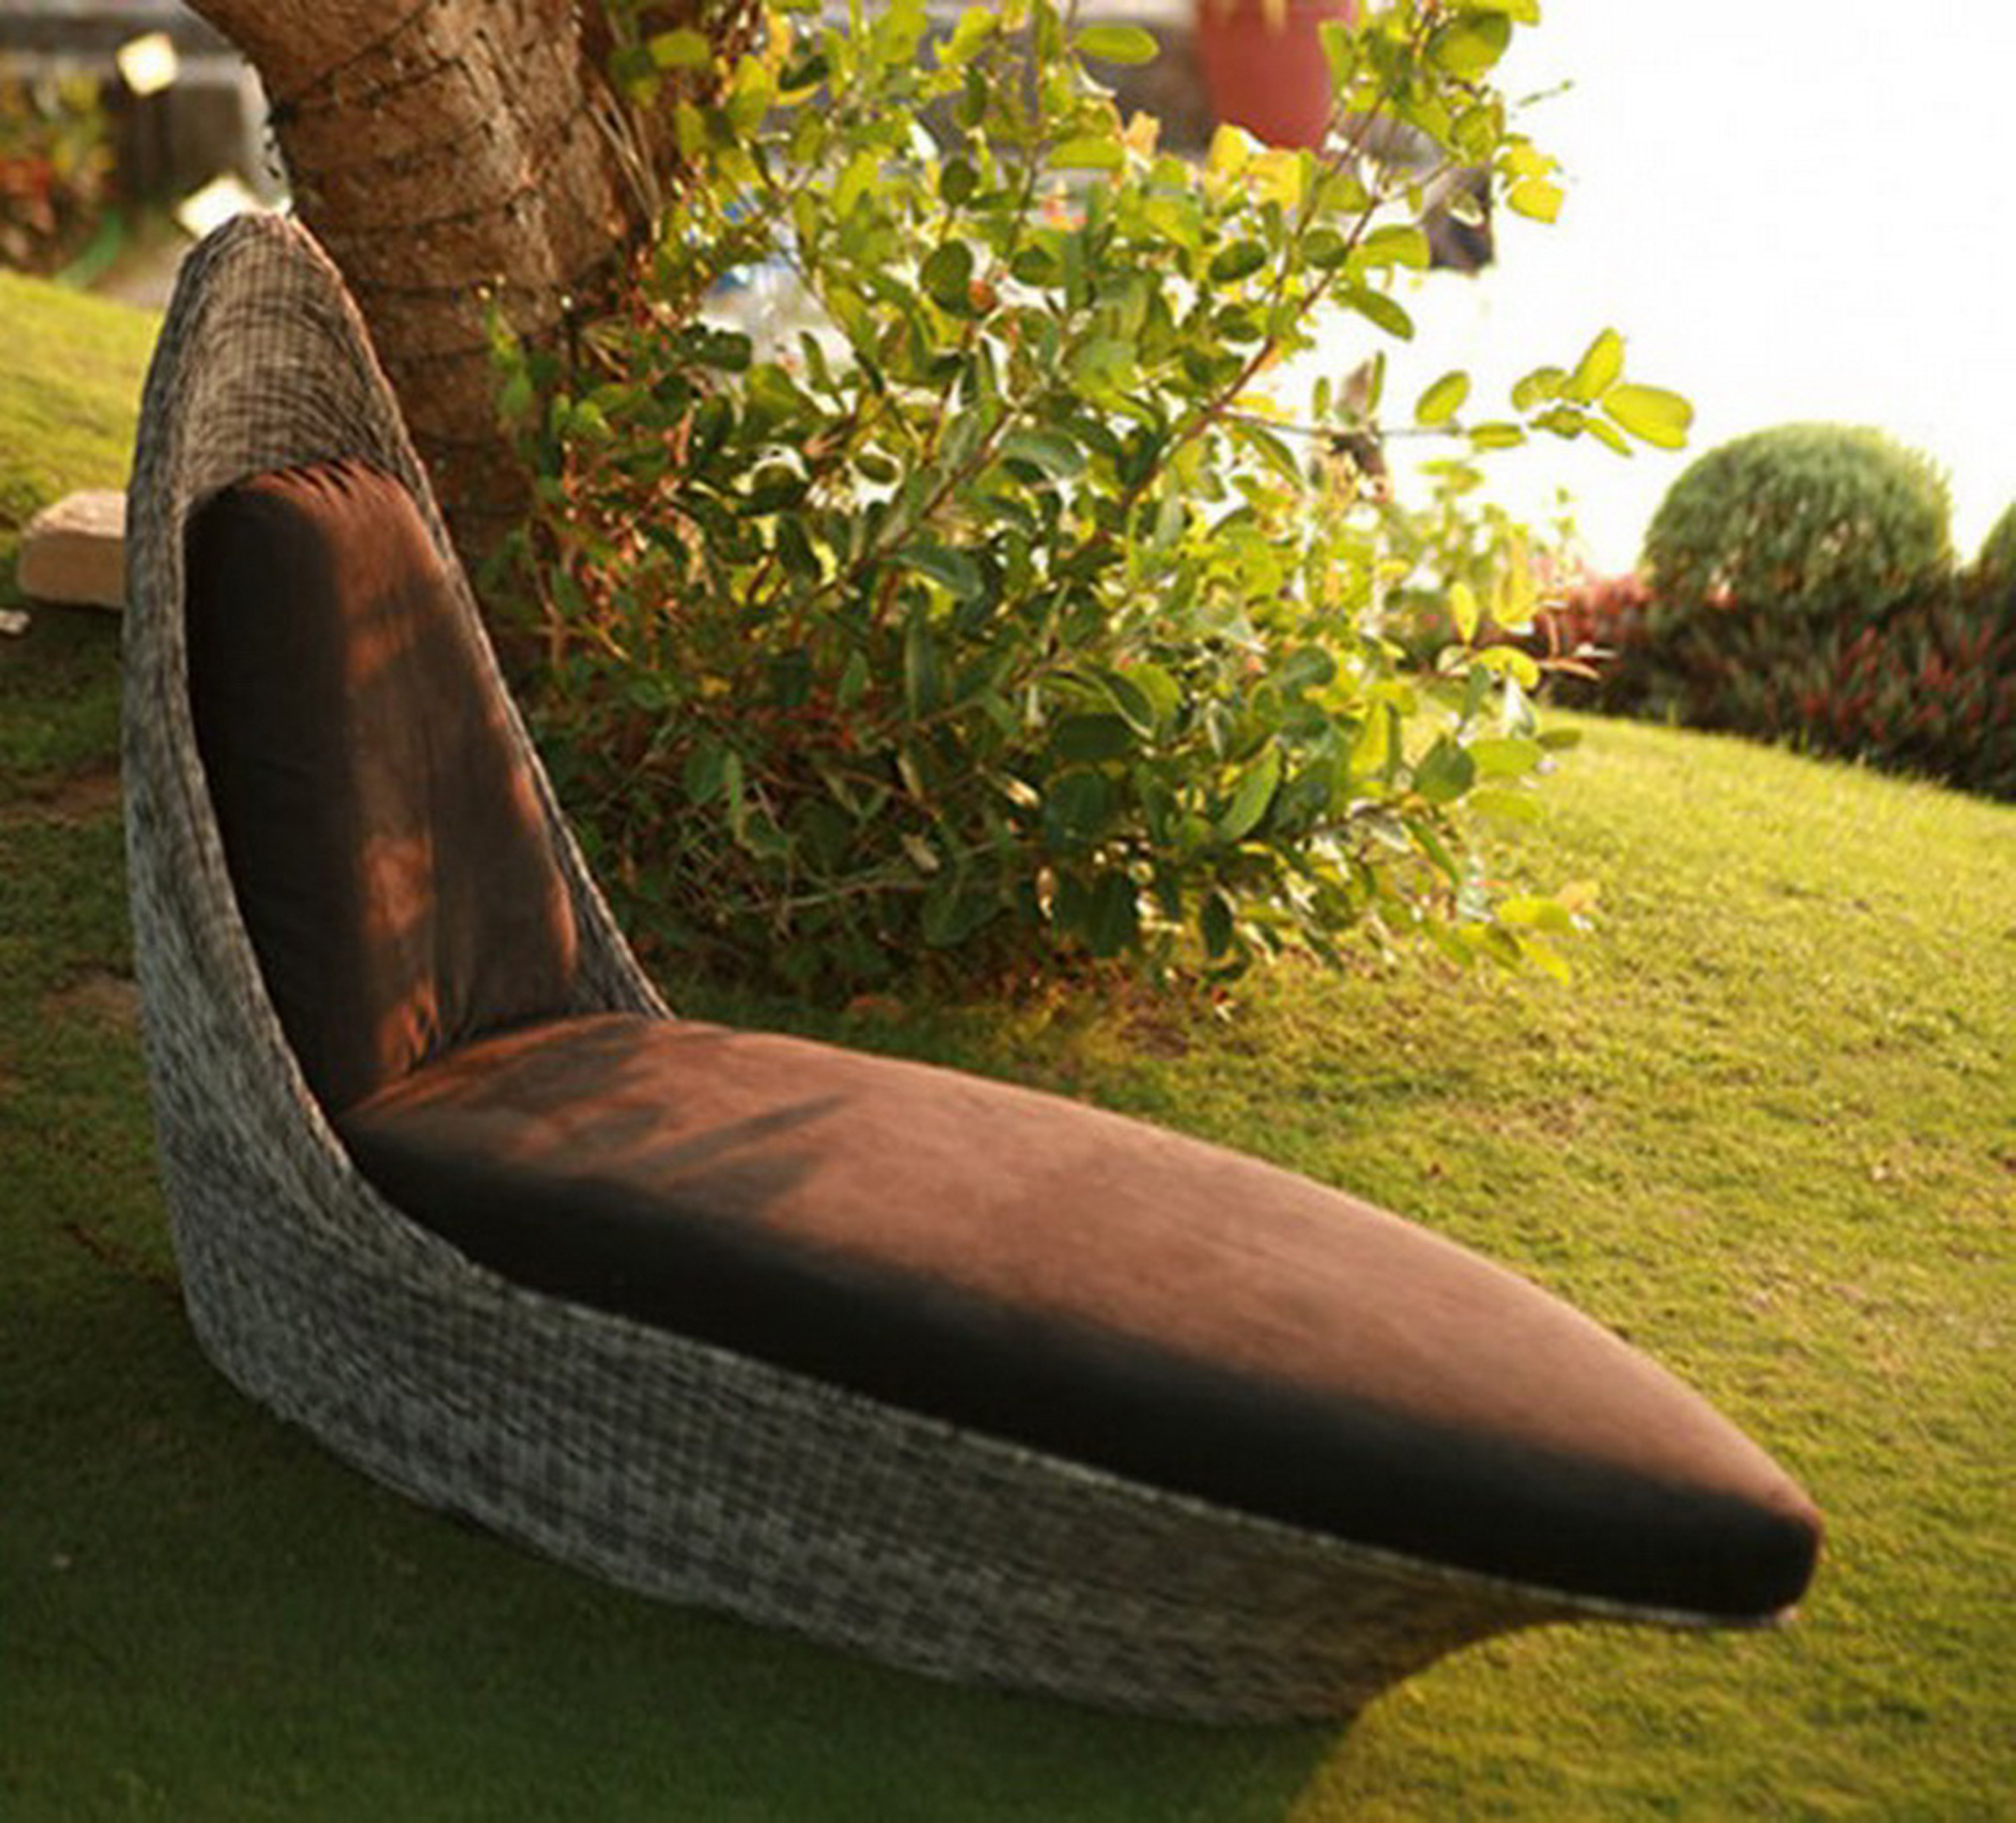 Amazing Outdoor Modern Wicker Lounge Chair Design Idea In Brown With Chocolate Seat Cushion Remarkable Outdoor Modern Wicker Ideas (Image 17 of 28)